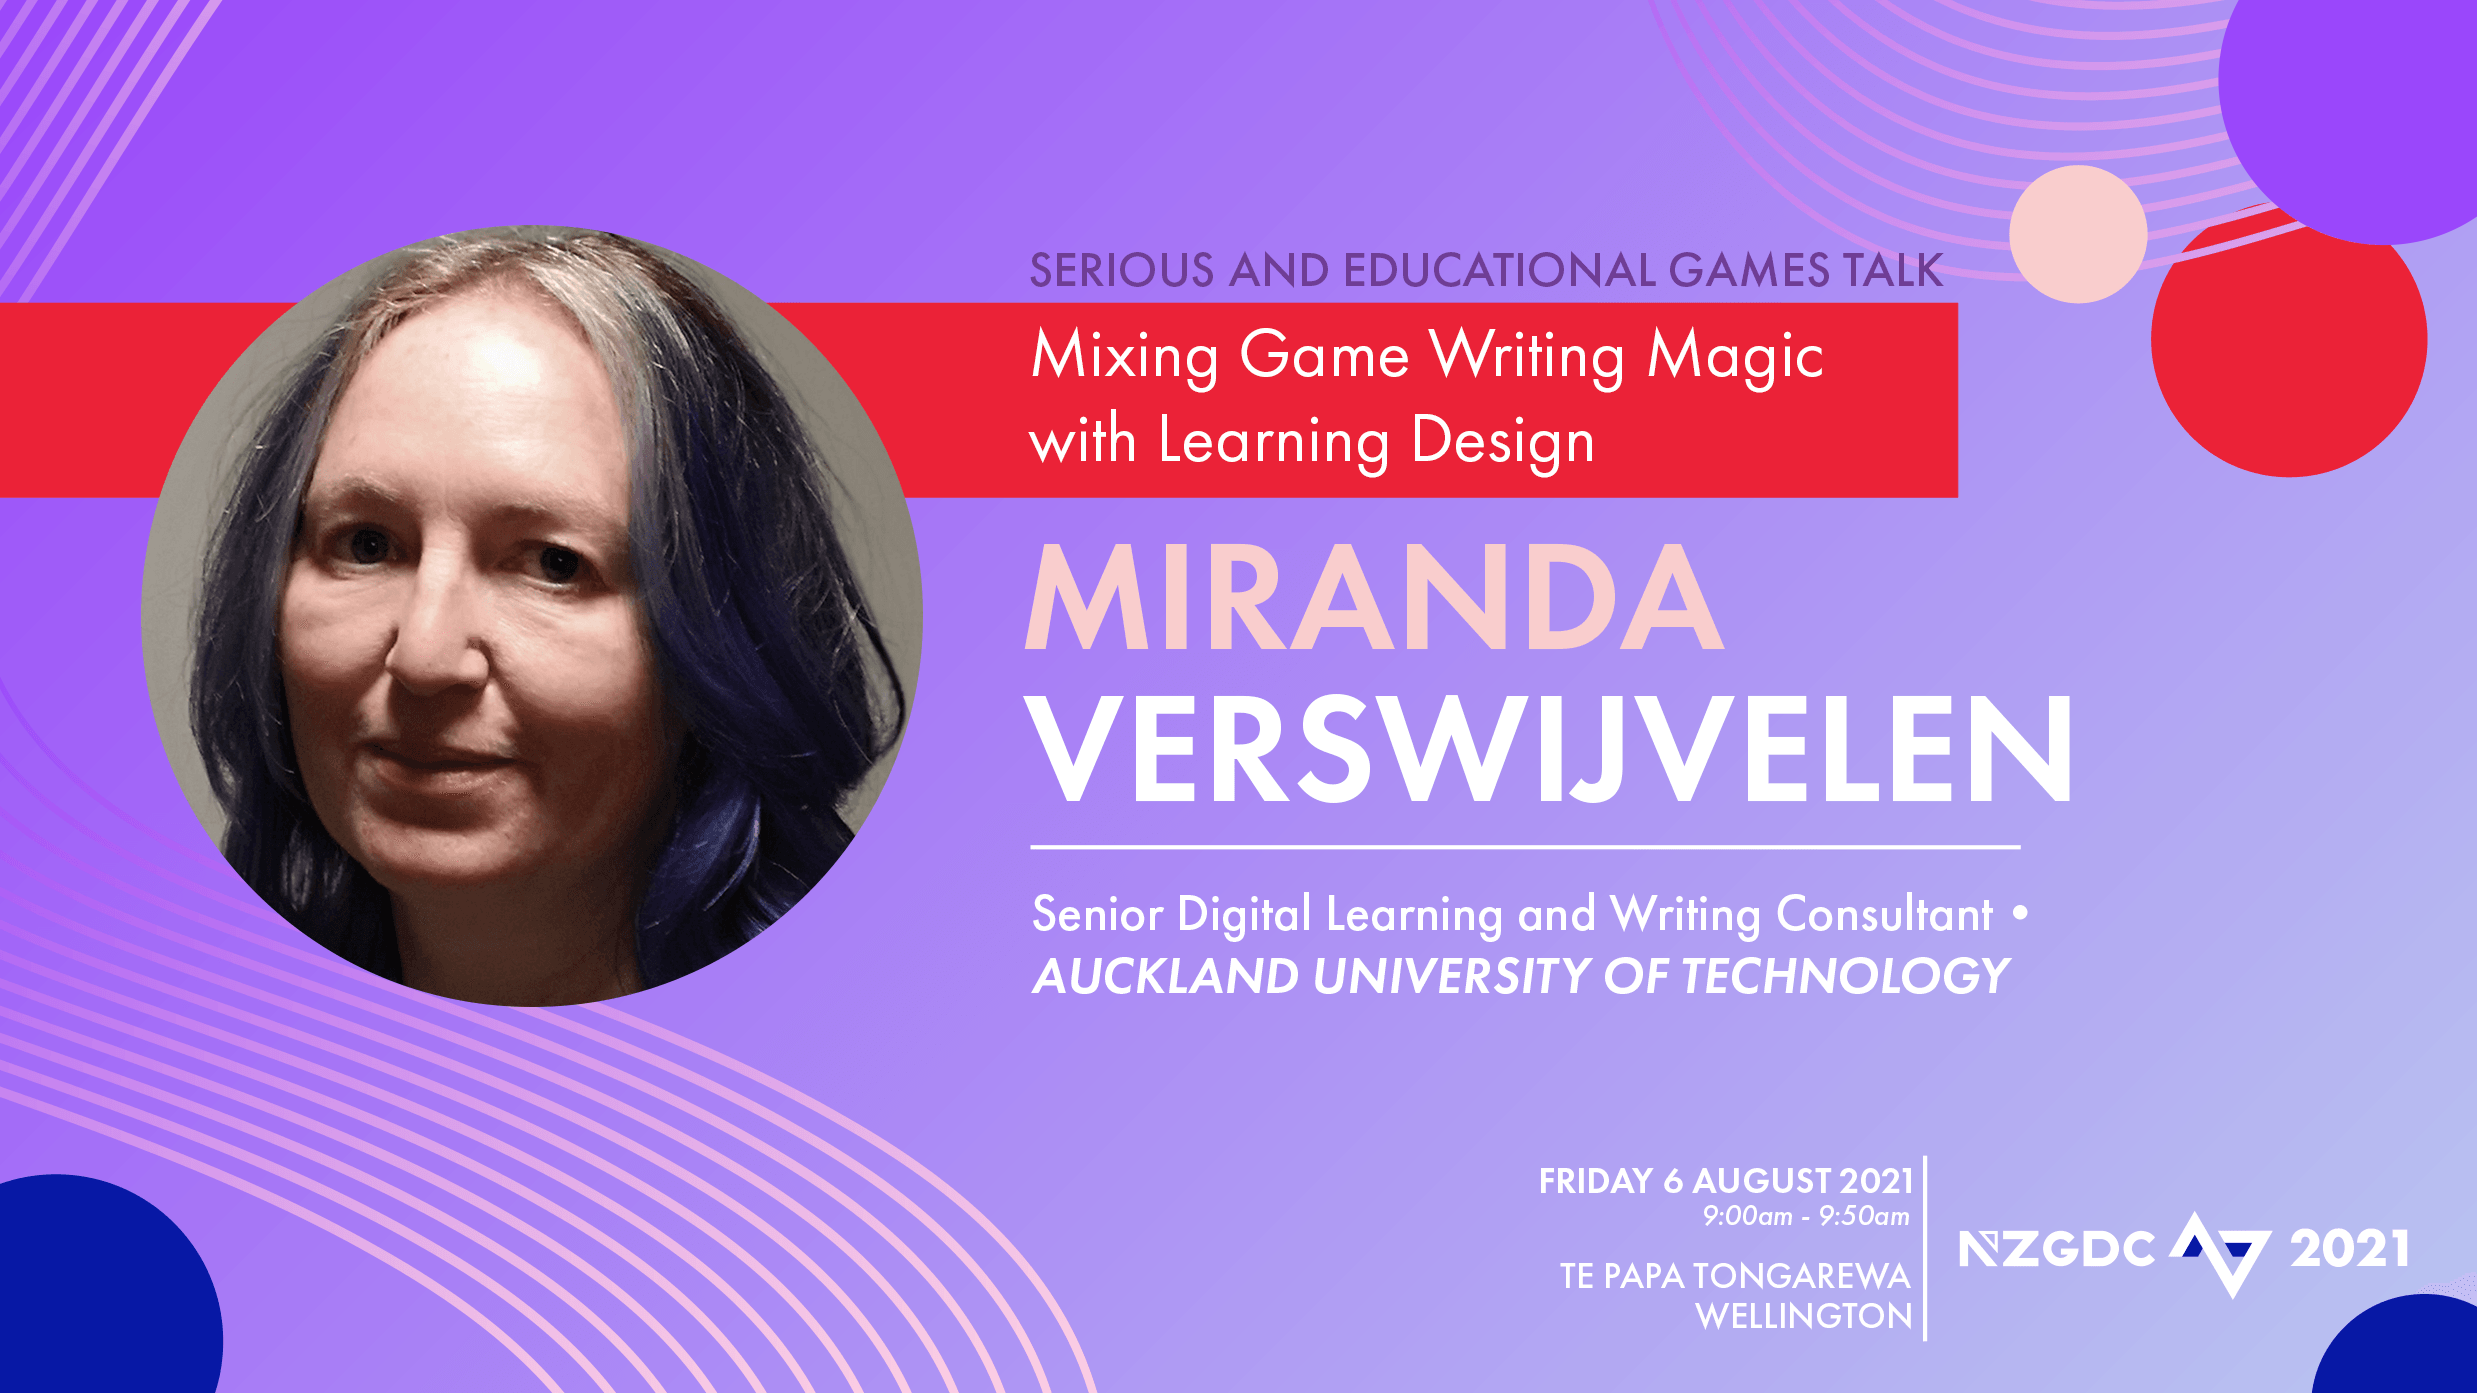 Mixing Game Writing Magic with Learning Design